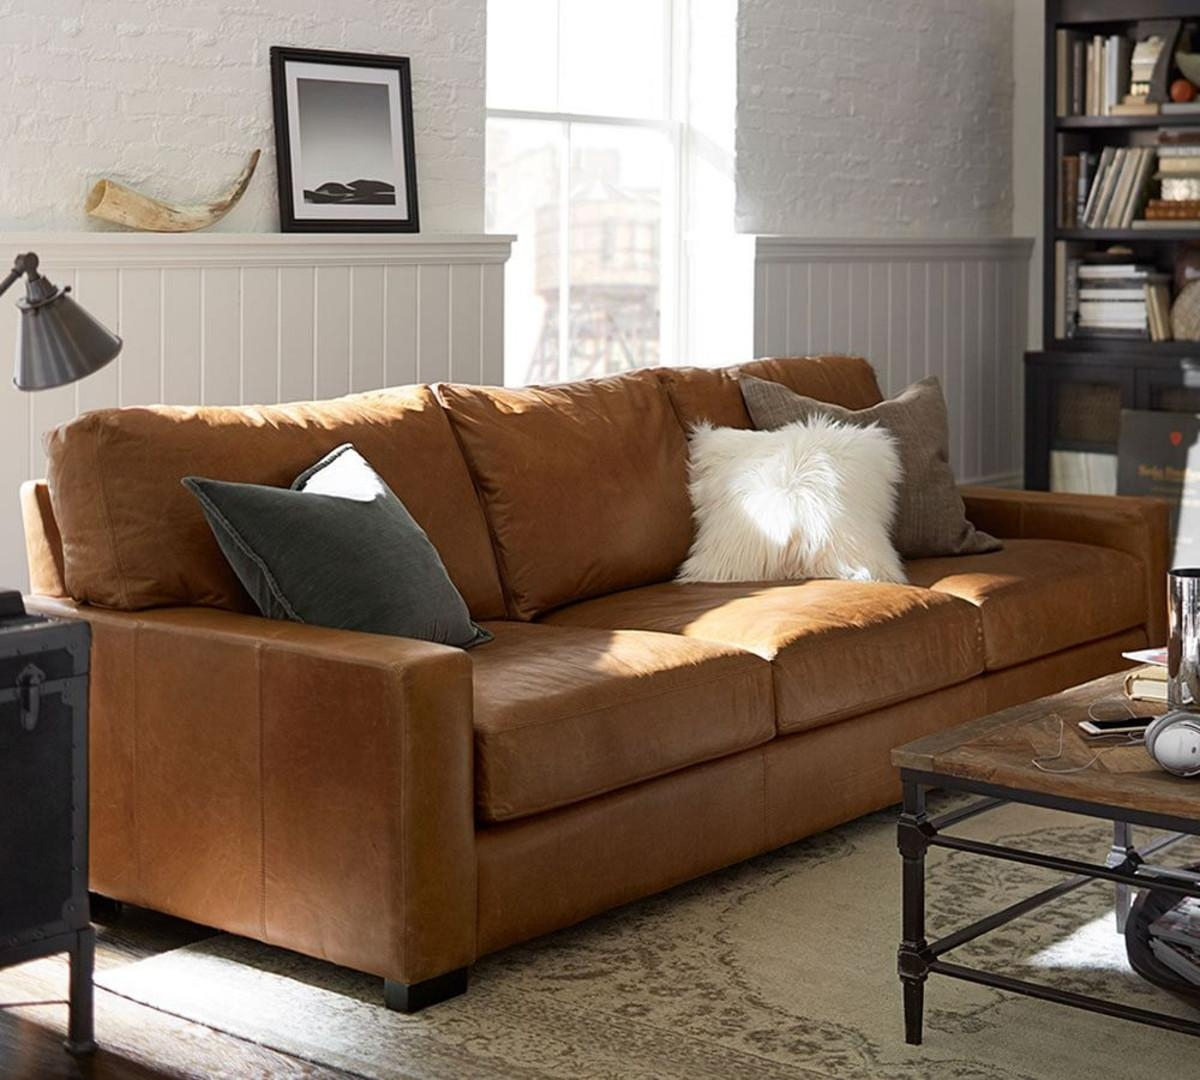 Caramel Leather Sofa Set | Demand Sofas Set With Regard To Caramel Leather Sofas (View 6 of 20)